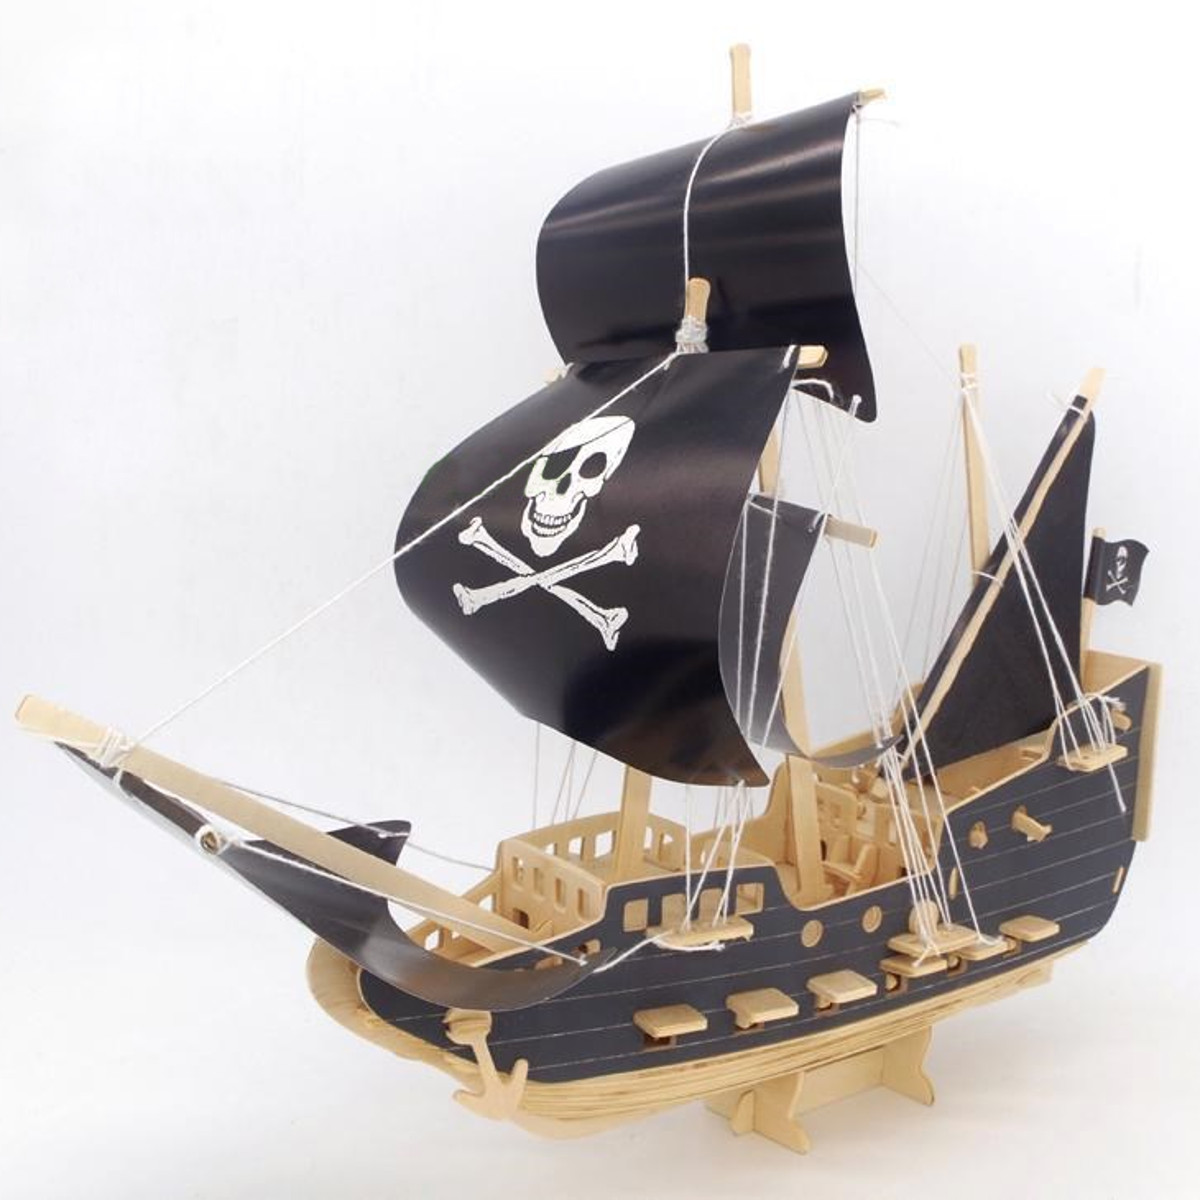 Pirate Boat Model DIY Wooden 3D Puzzle Woodcraft Construction Kit Ship Wooden Model Puzzle Educational Jigsaw Toy For Children